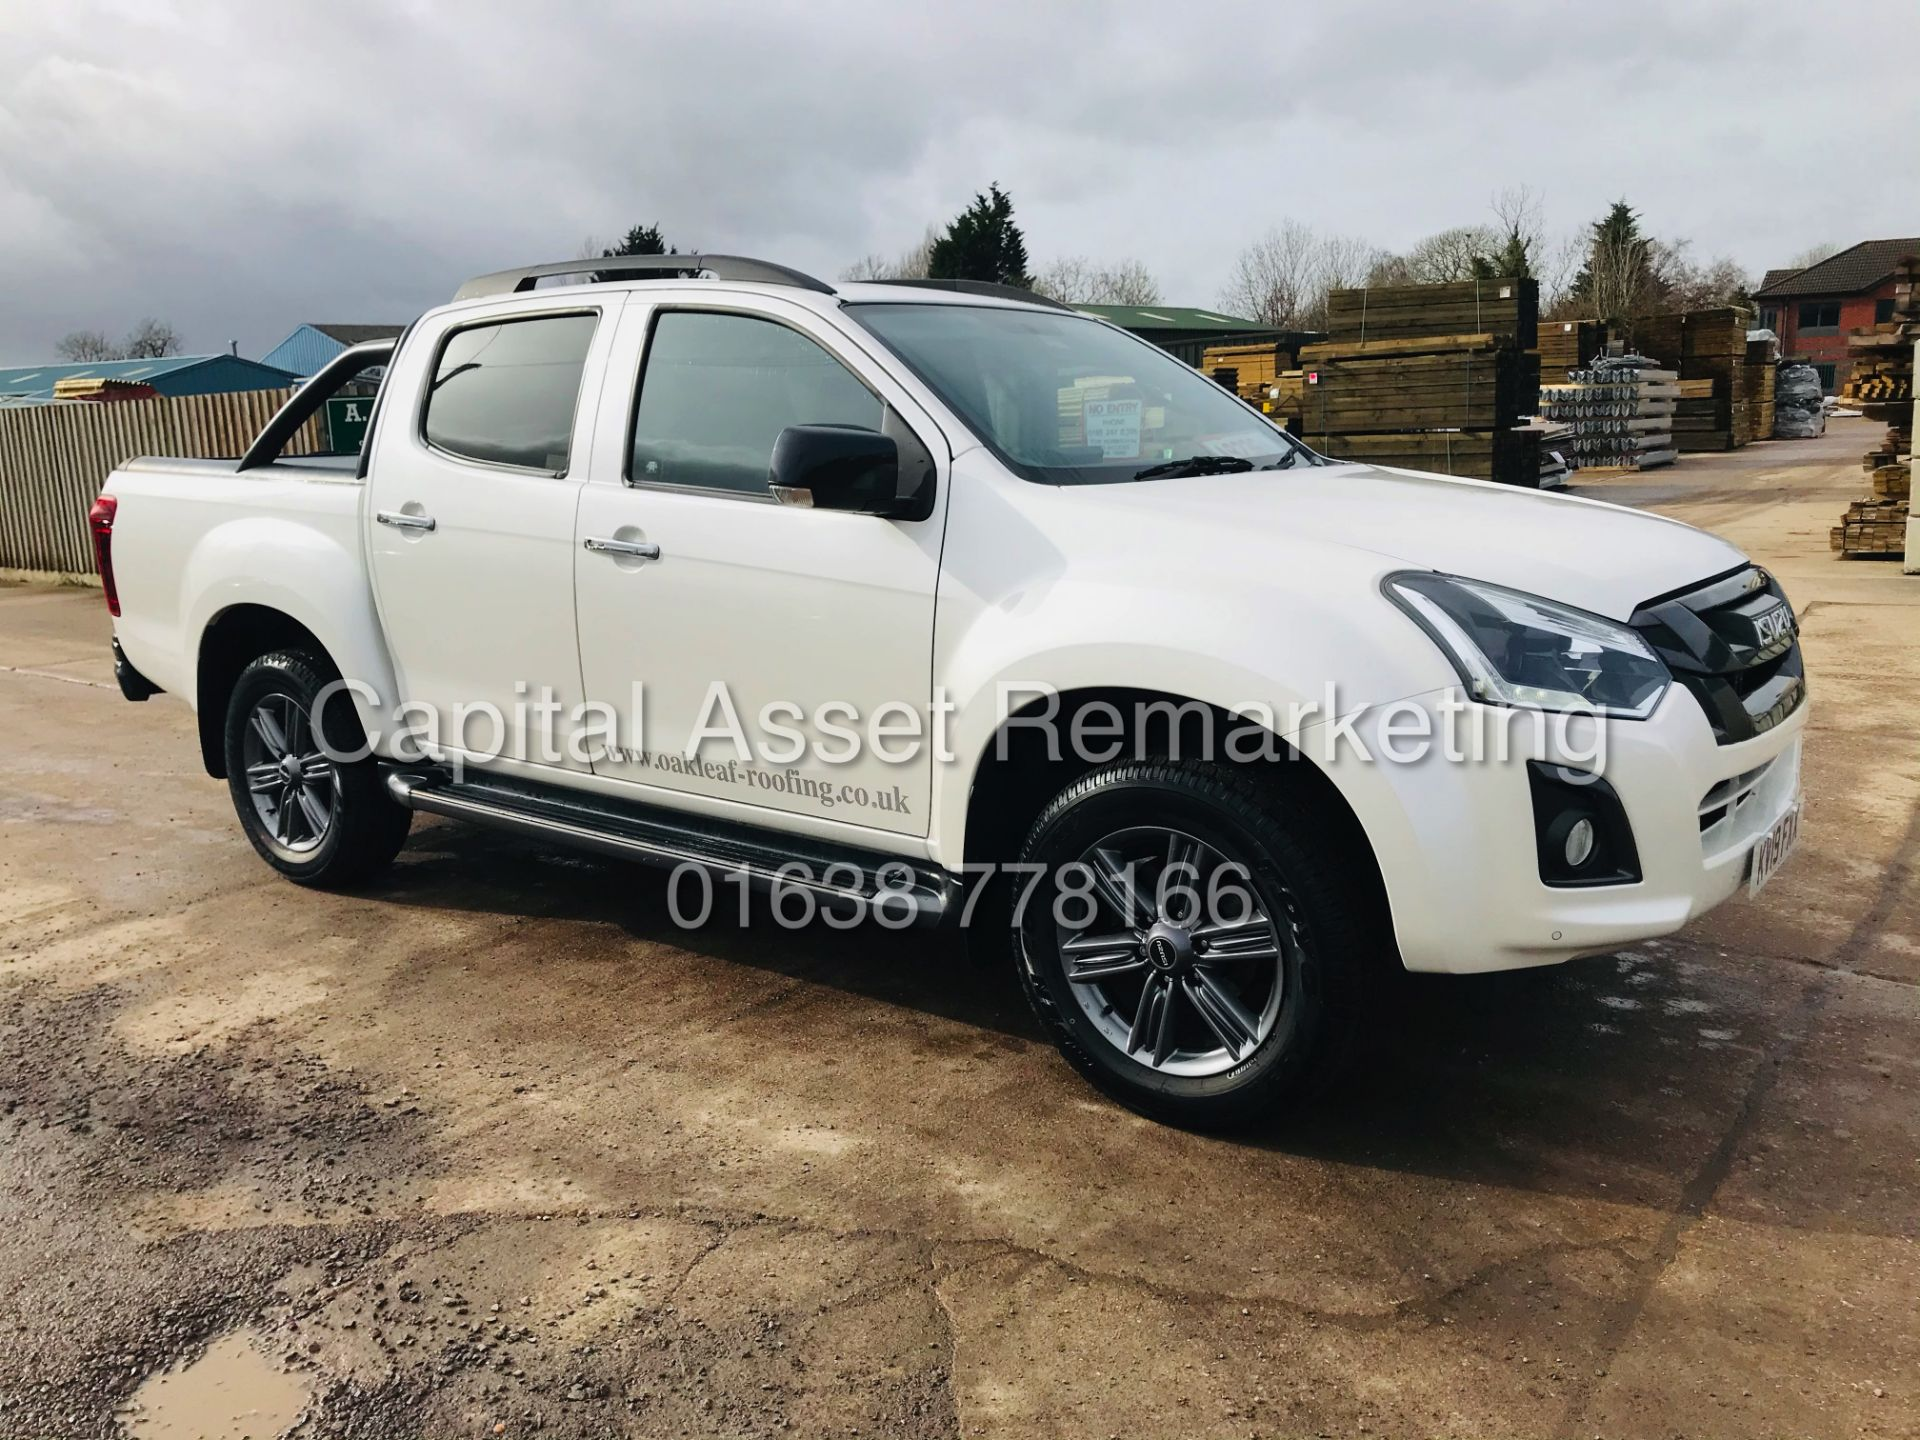 "(On Sale) ISUZU D-MAX ""BLADE"" AUTO - 1 OWNER (2019 - EURO 6) LEATHER - SAT NAV *TOP SPEC* - Image 2 of 34"